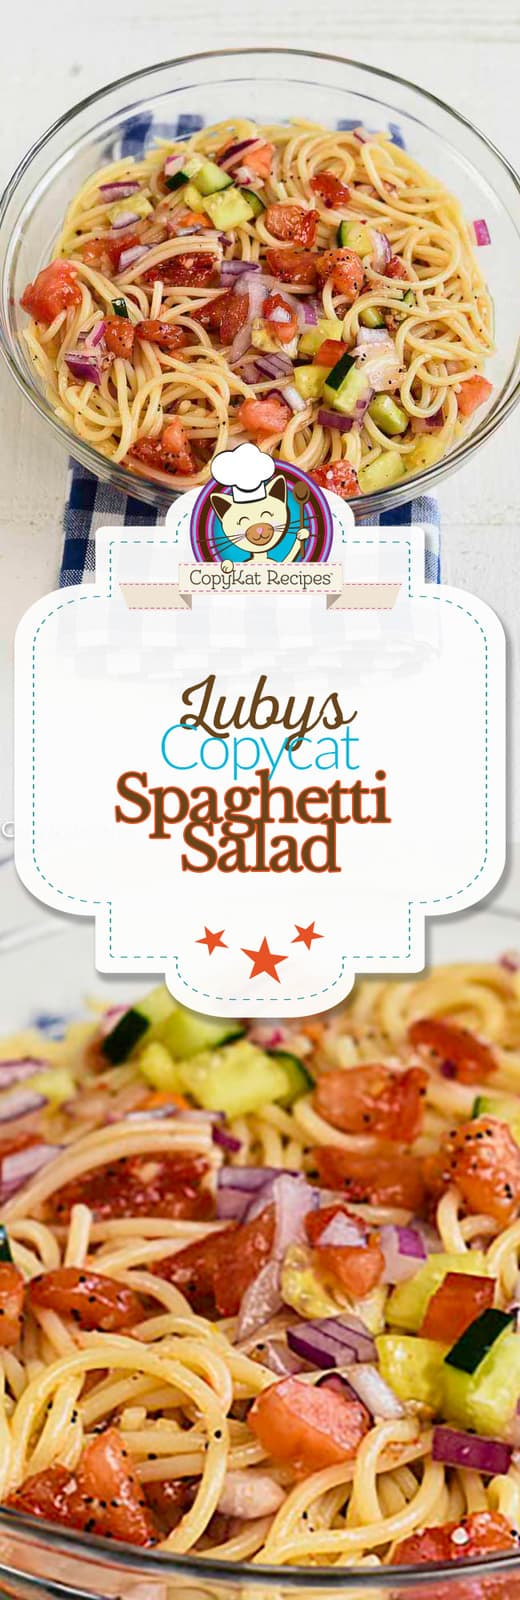 You can prepare Luby's Spaghetti Salad just like they do when you make this copycat recipe at home.